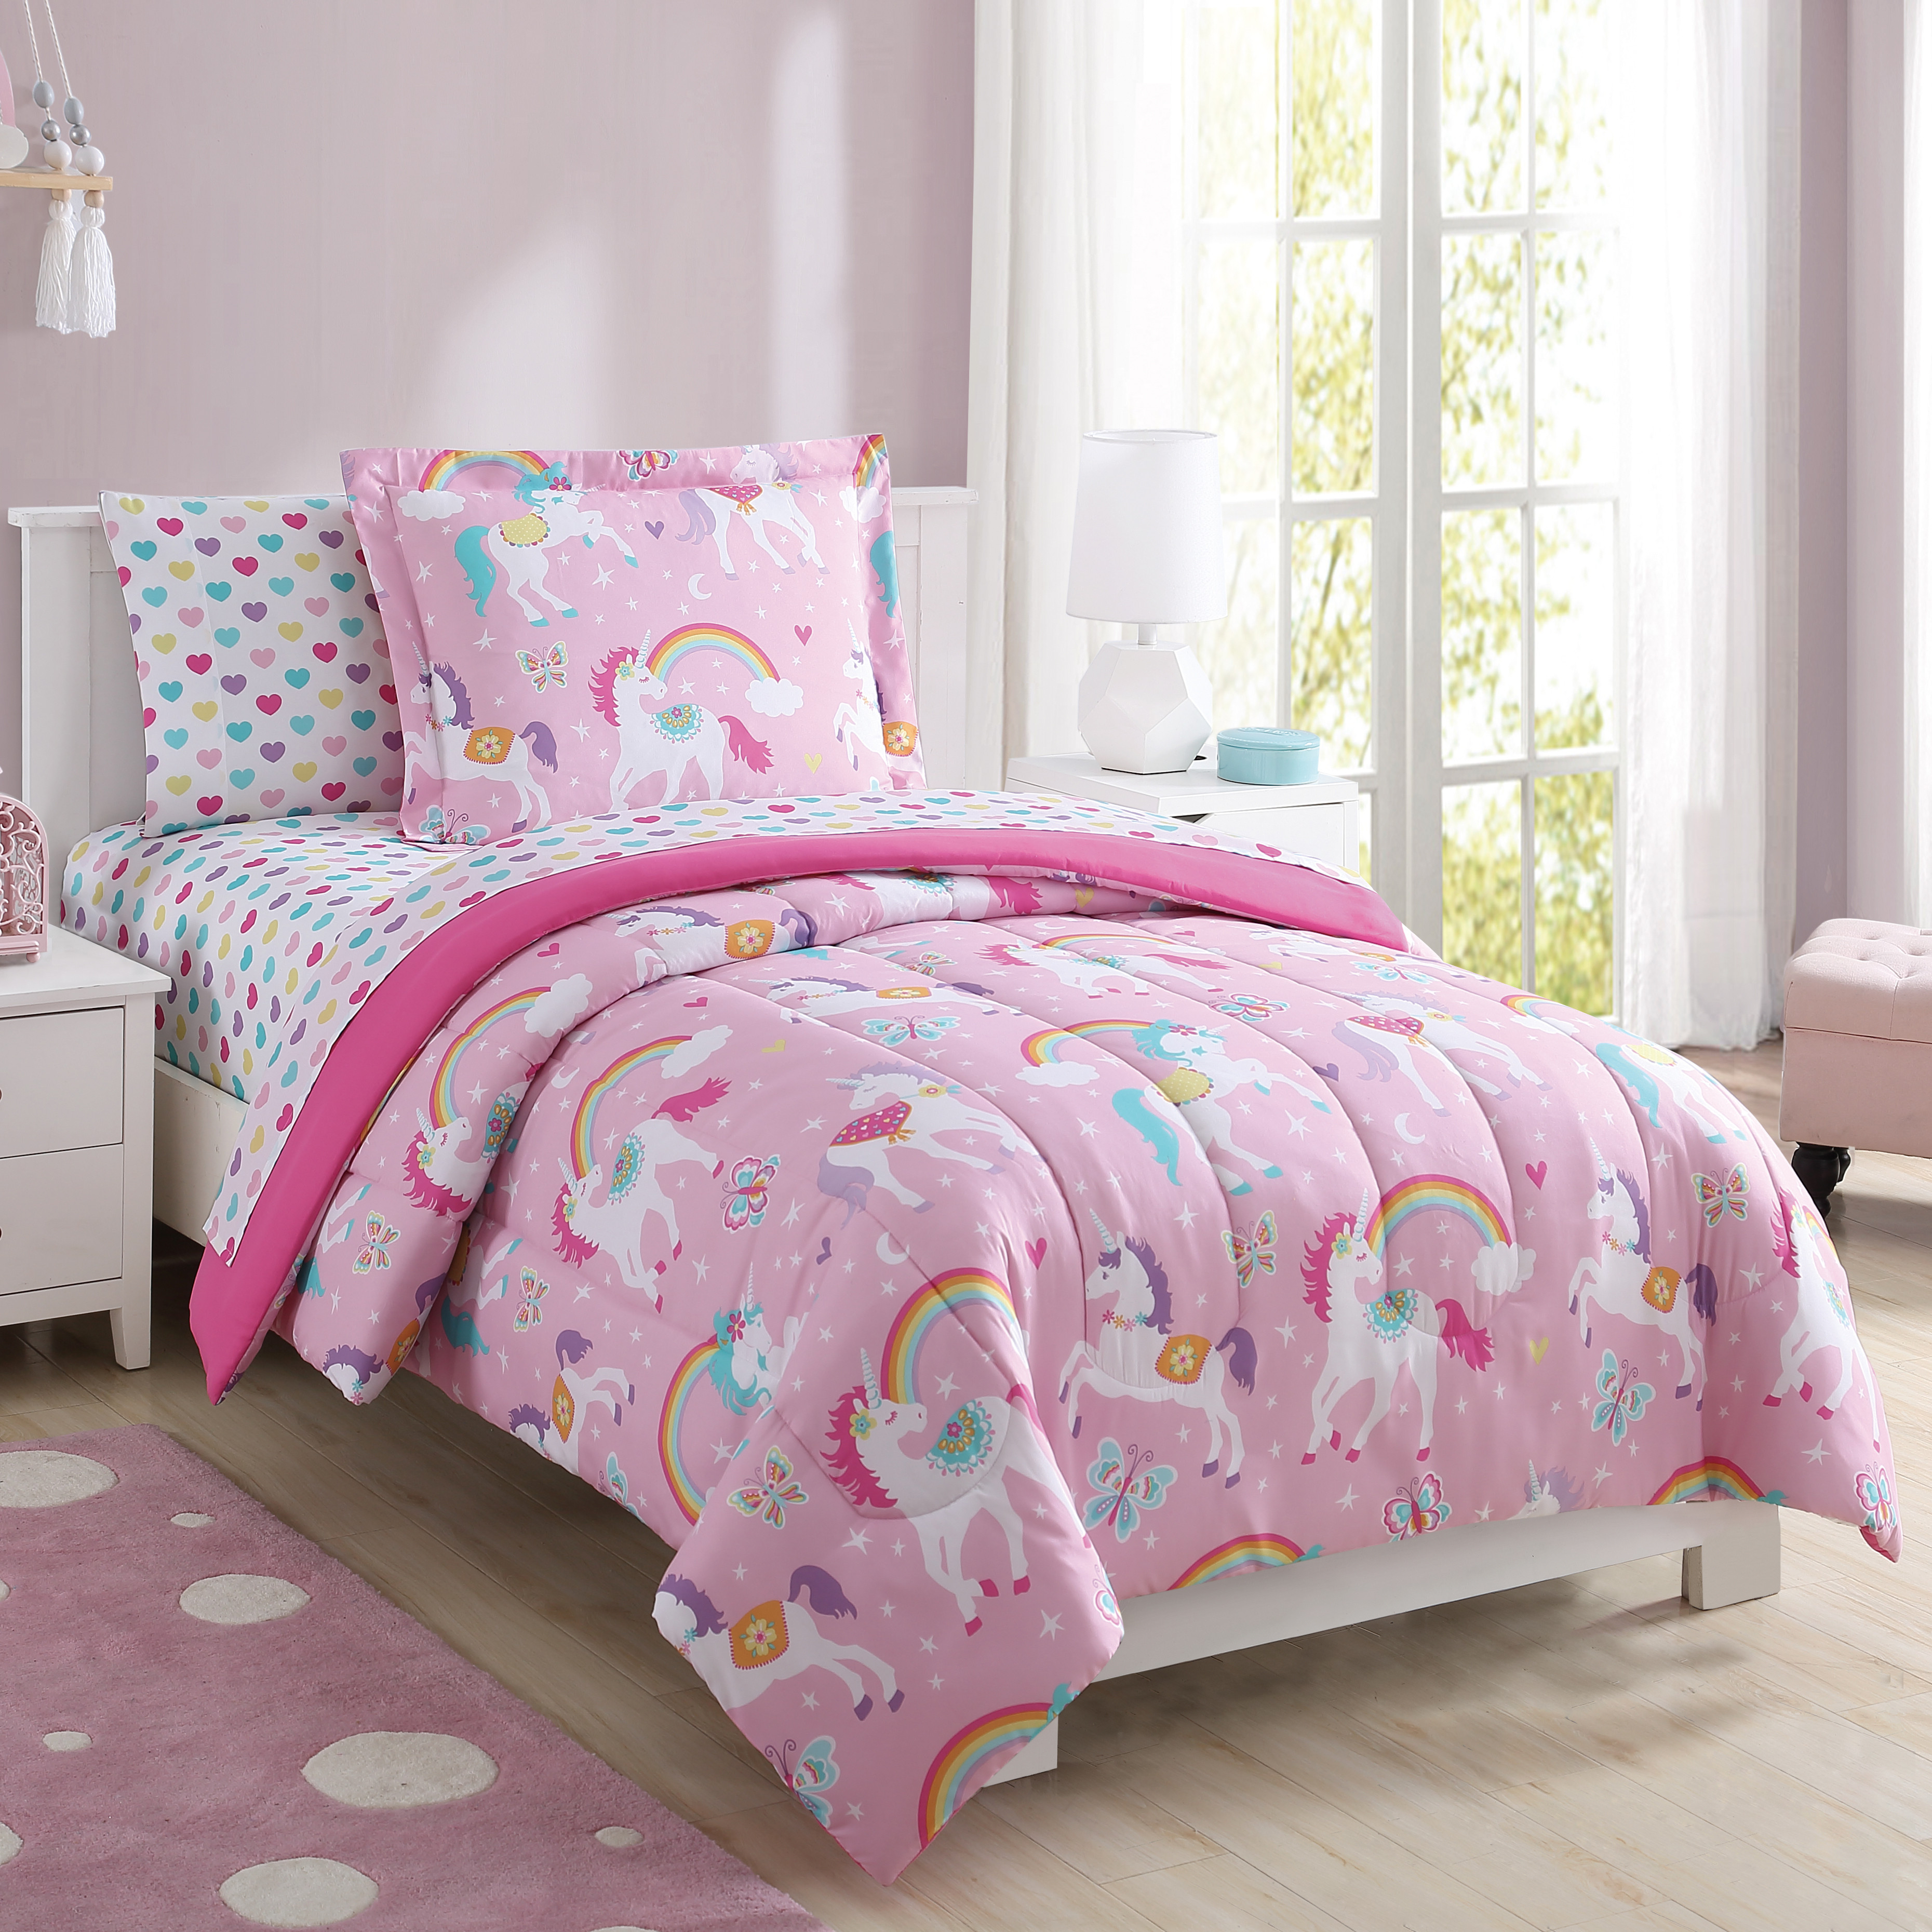 Your Zone Rainbow Unicorn Bed In A Bag Coordinated Bedding Set Pink Twin Size Walmart Com Walmart Com